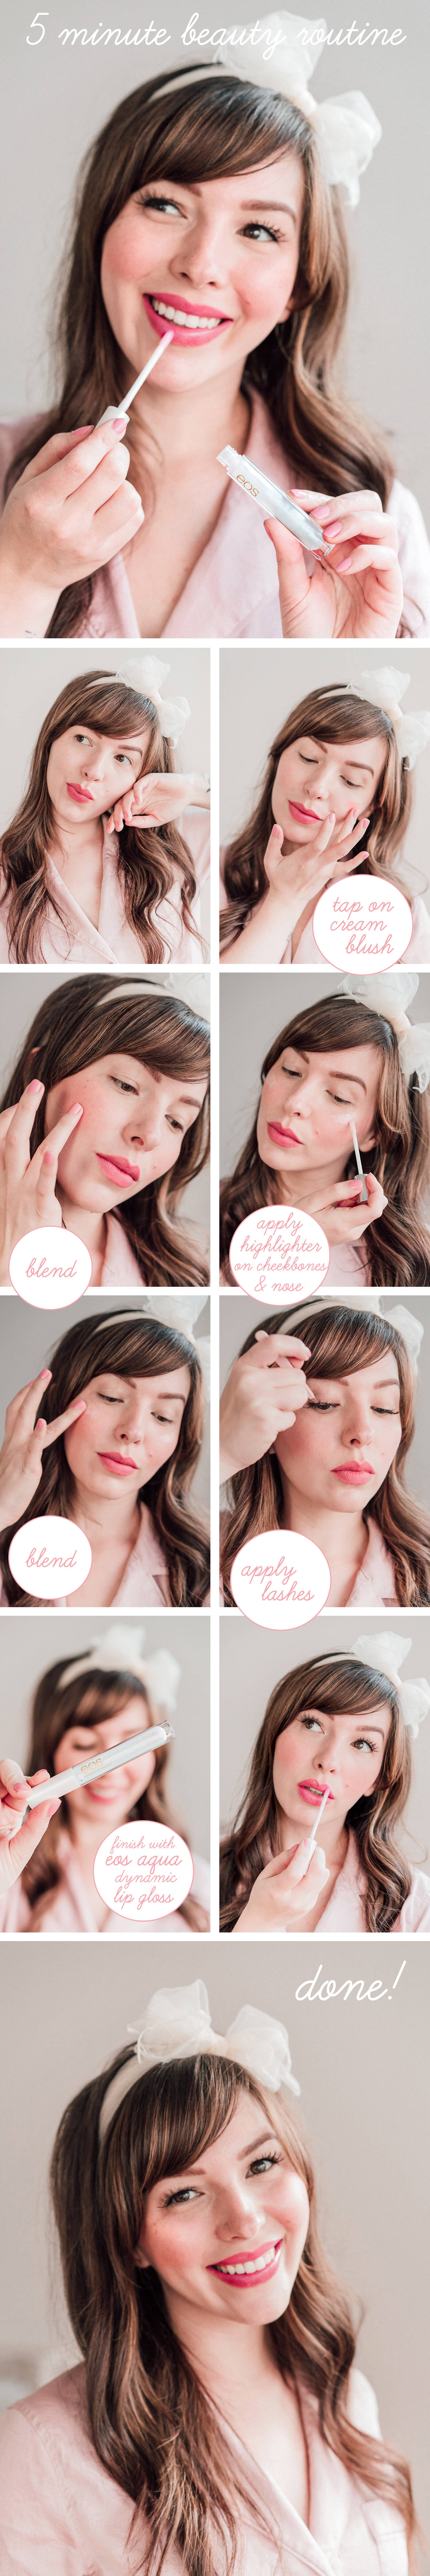 5 minute beauty routine tutorial with eos